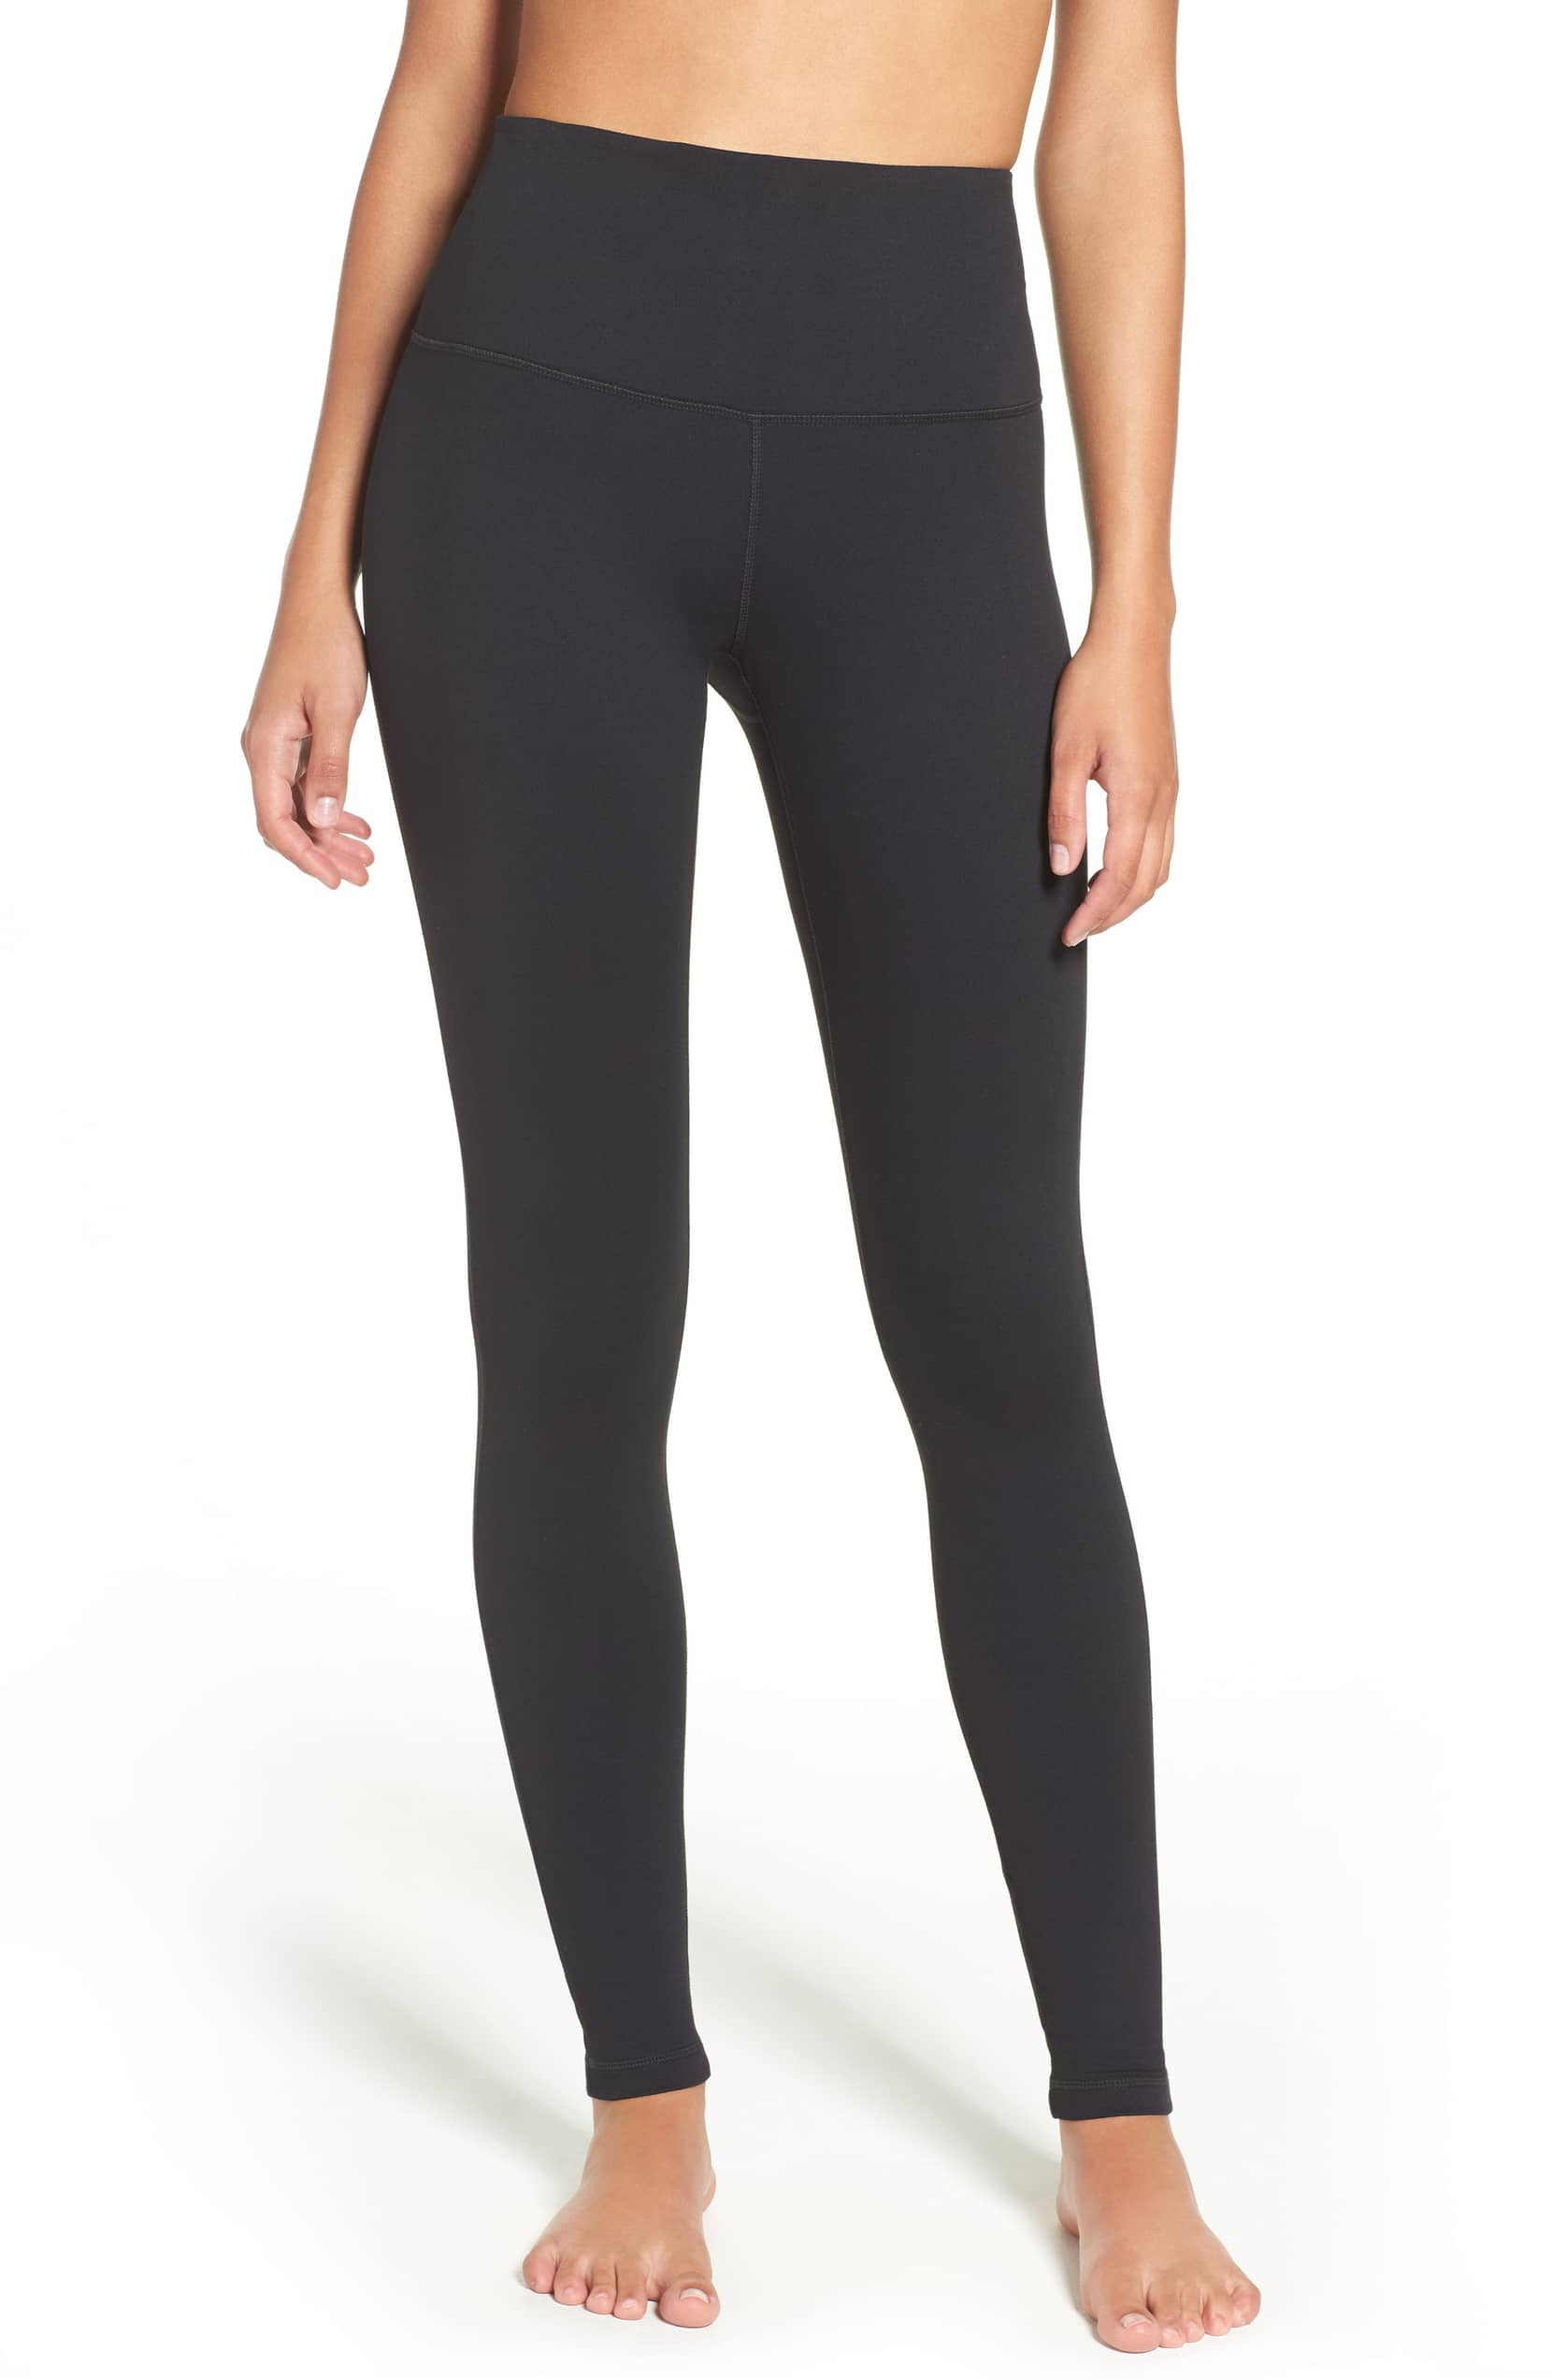 leggings-for-travel